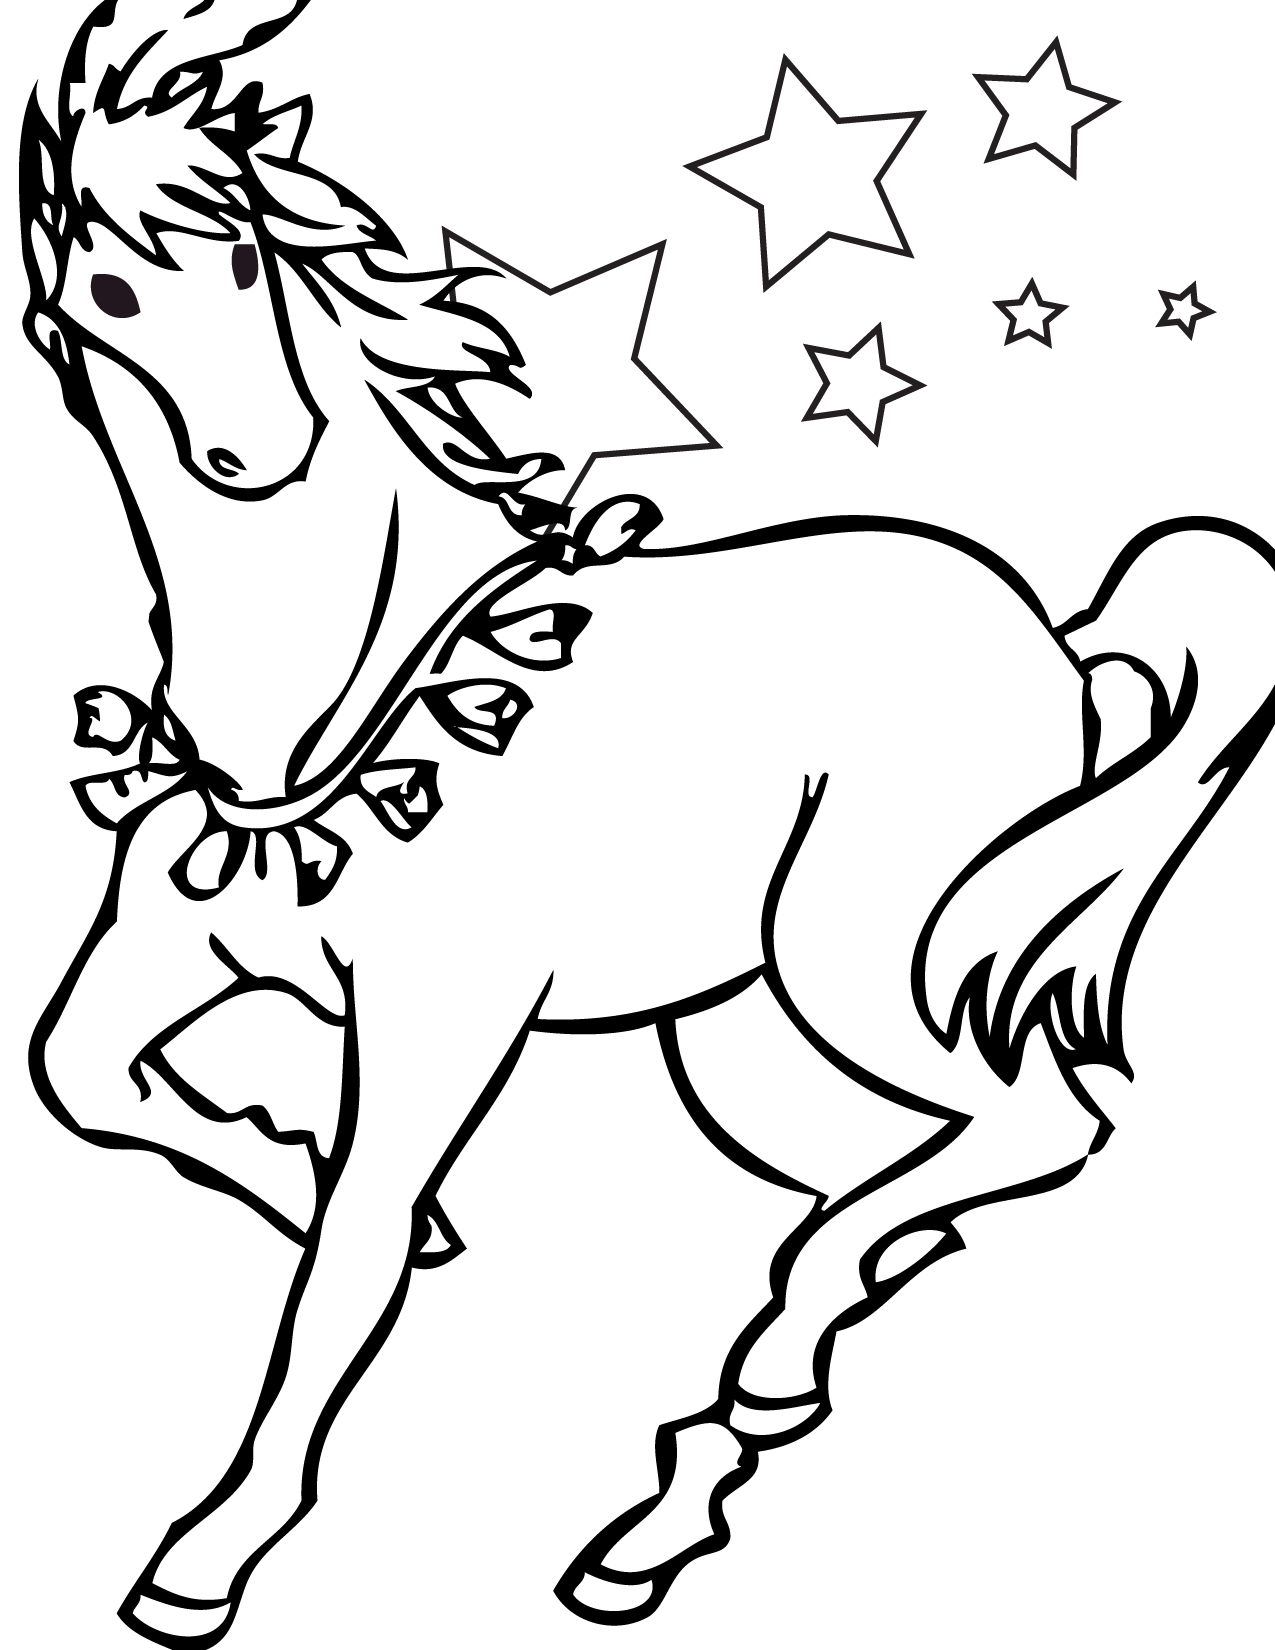 free coloring pages of horses - Free Coloring Pages Horses